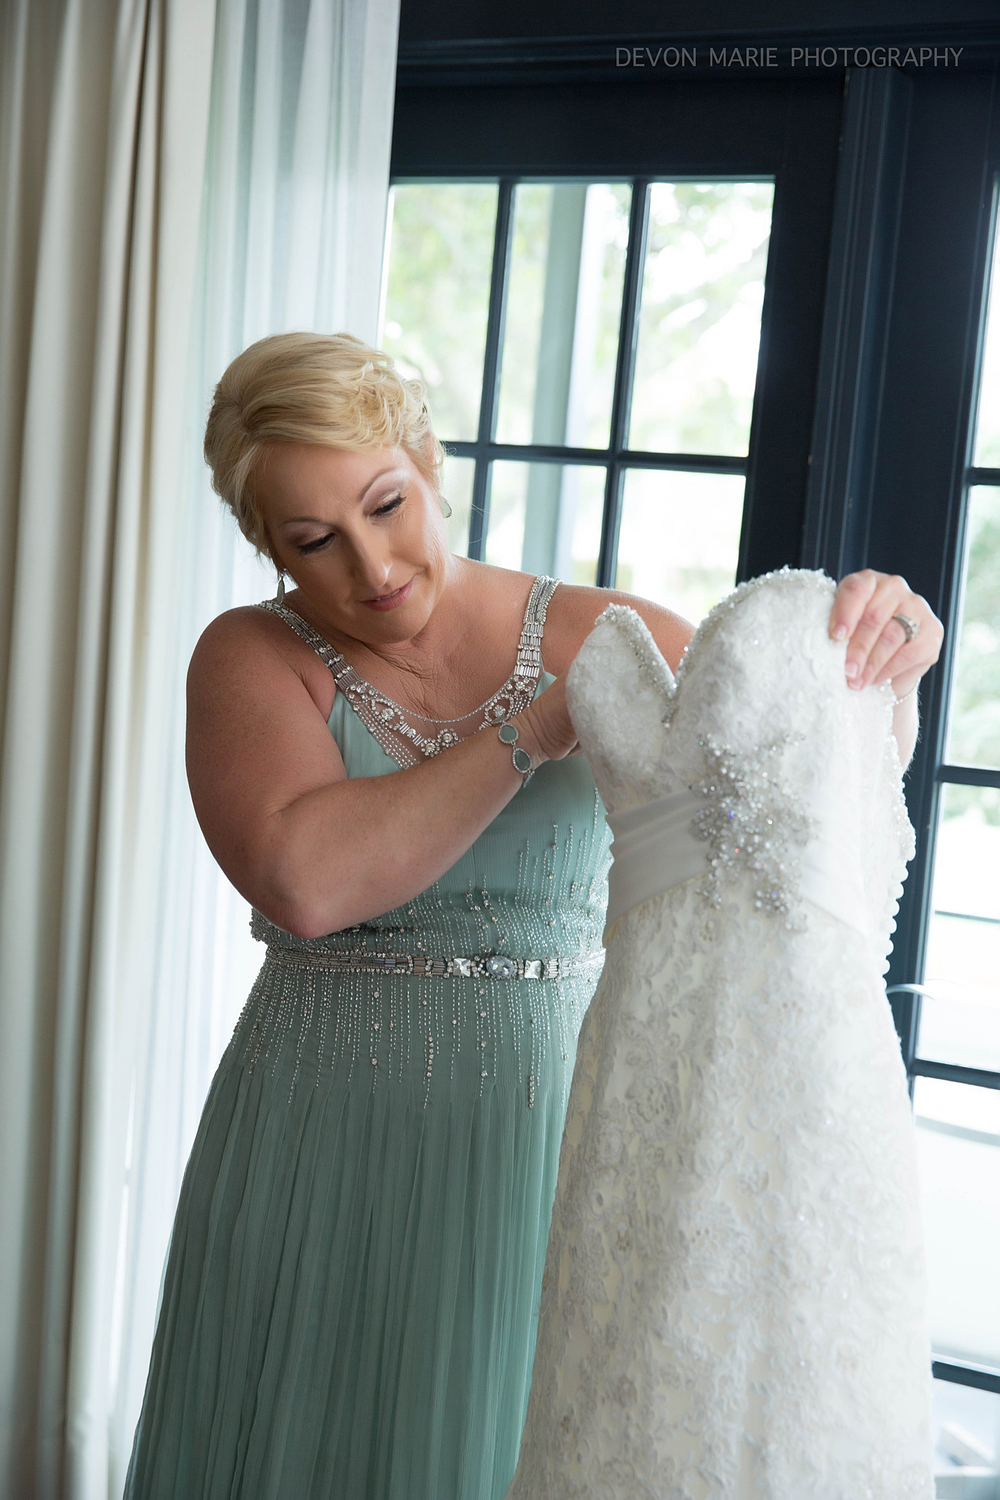 Her mom admiring her little girls wedding dress...